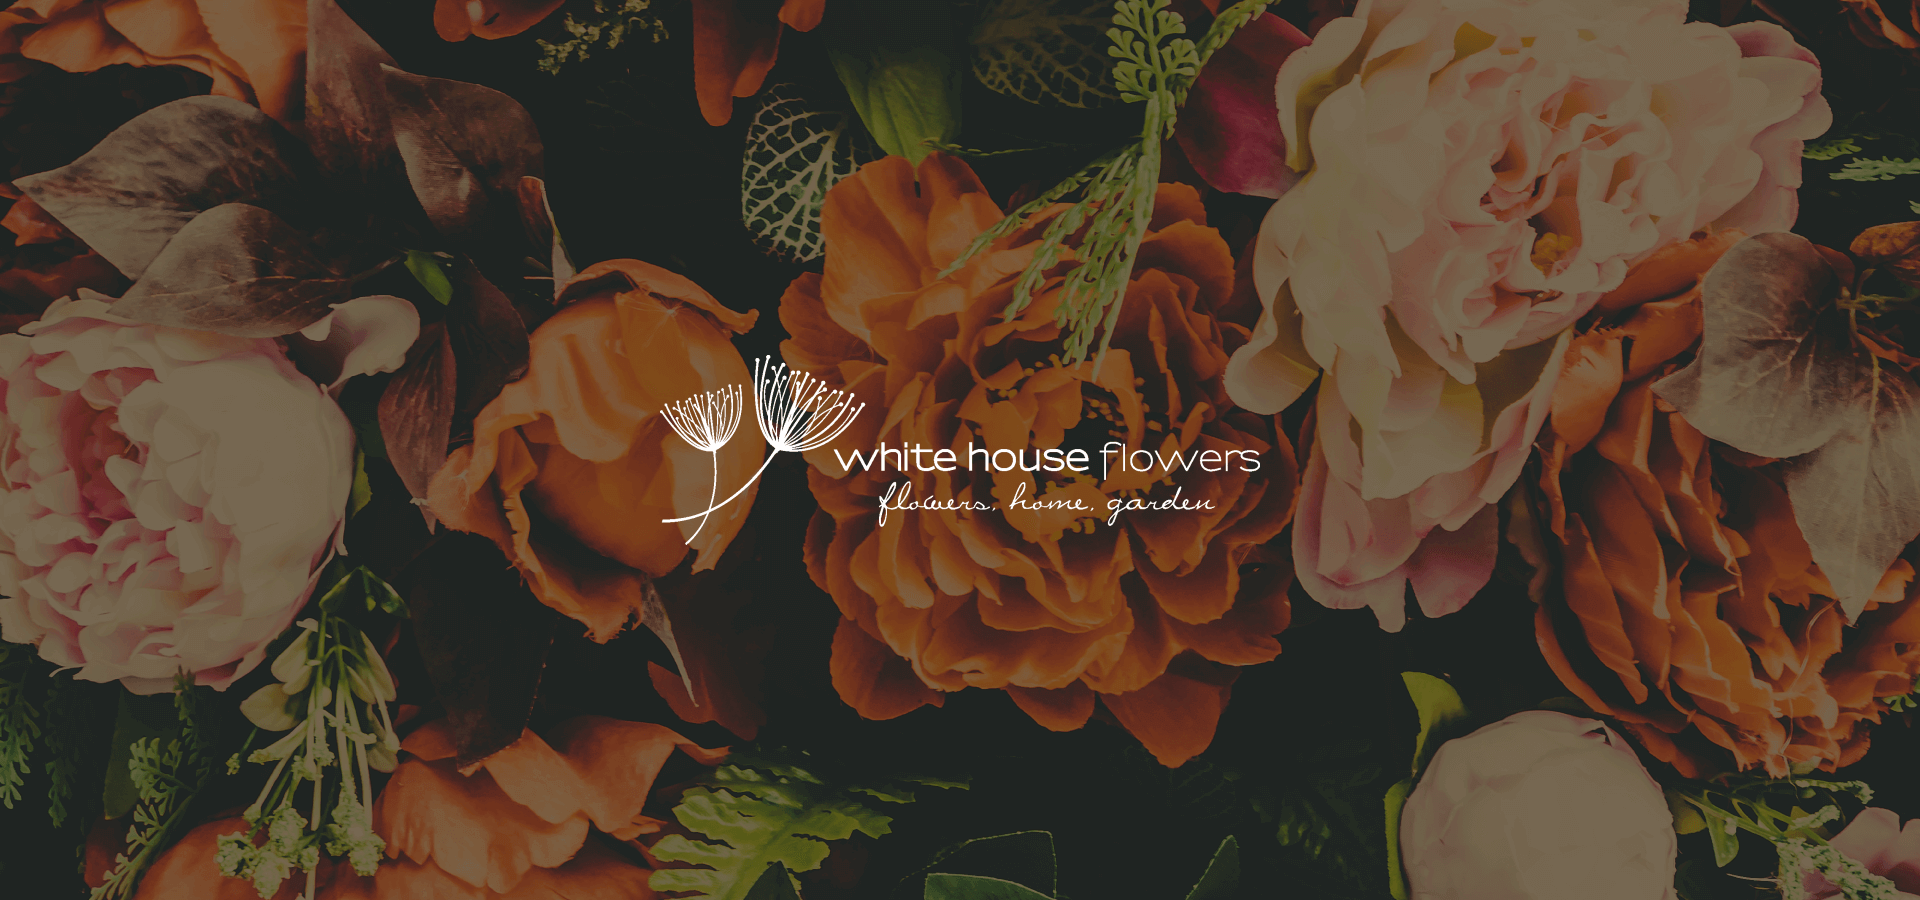 Web Development for White House Flowers